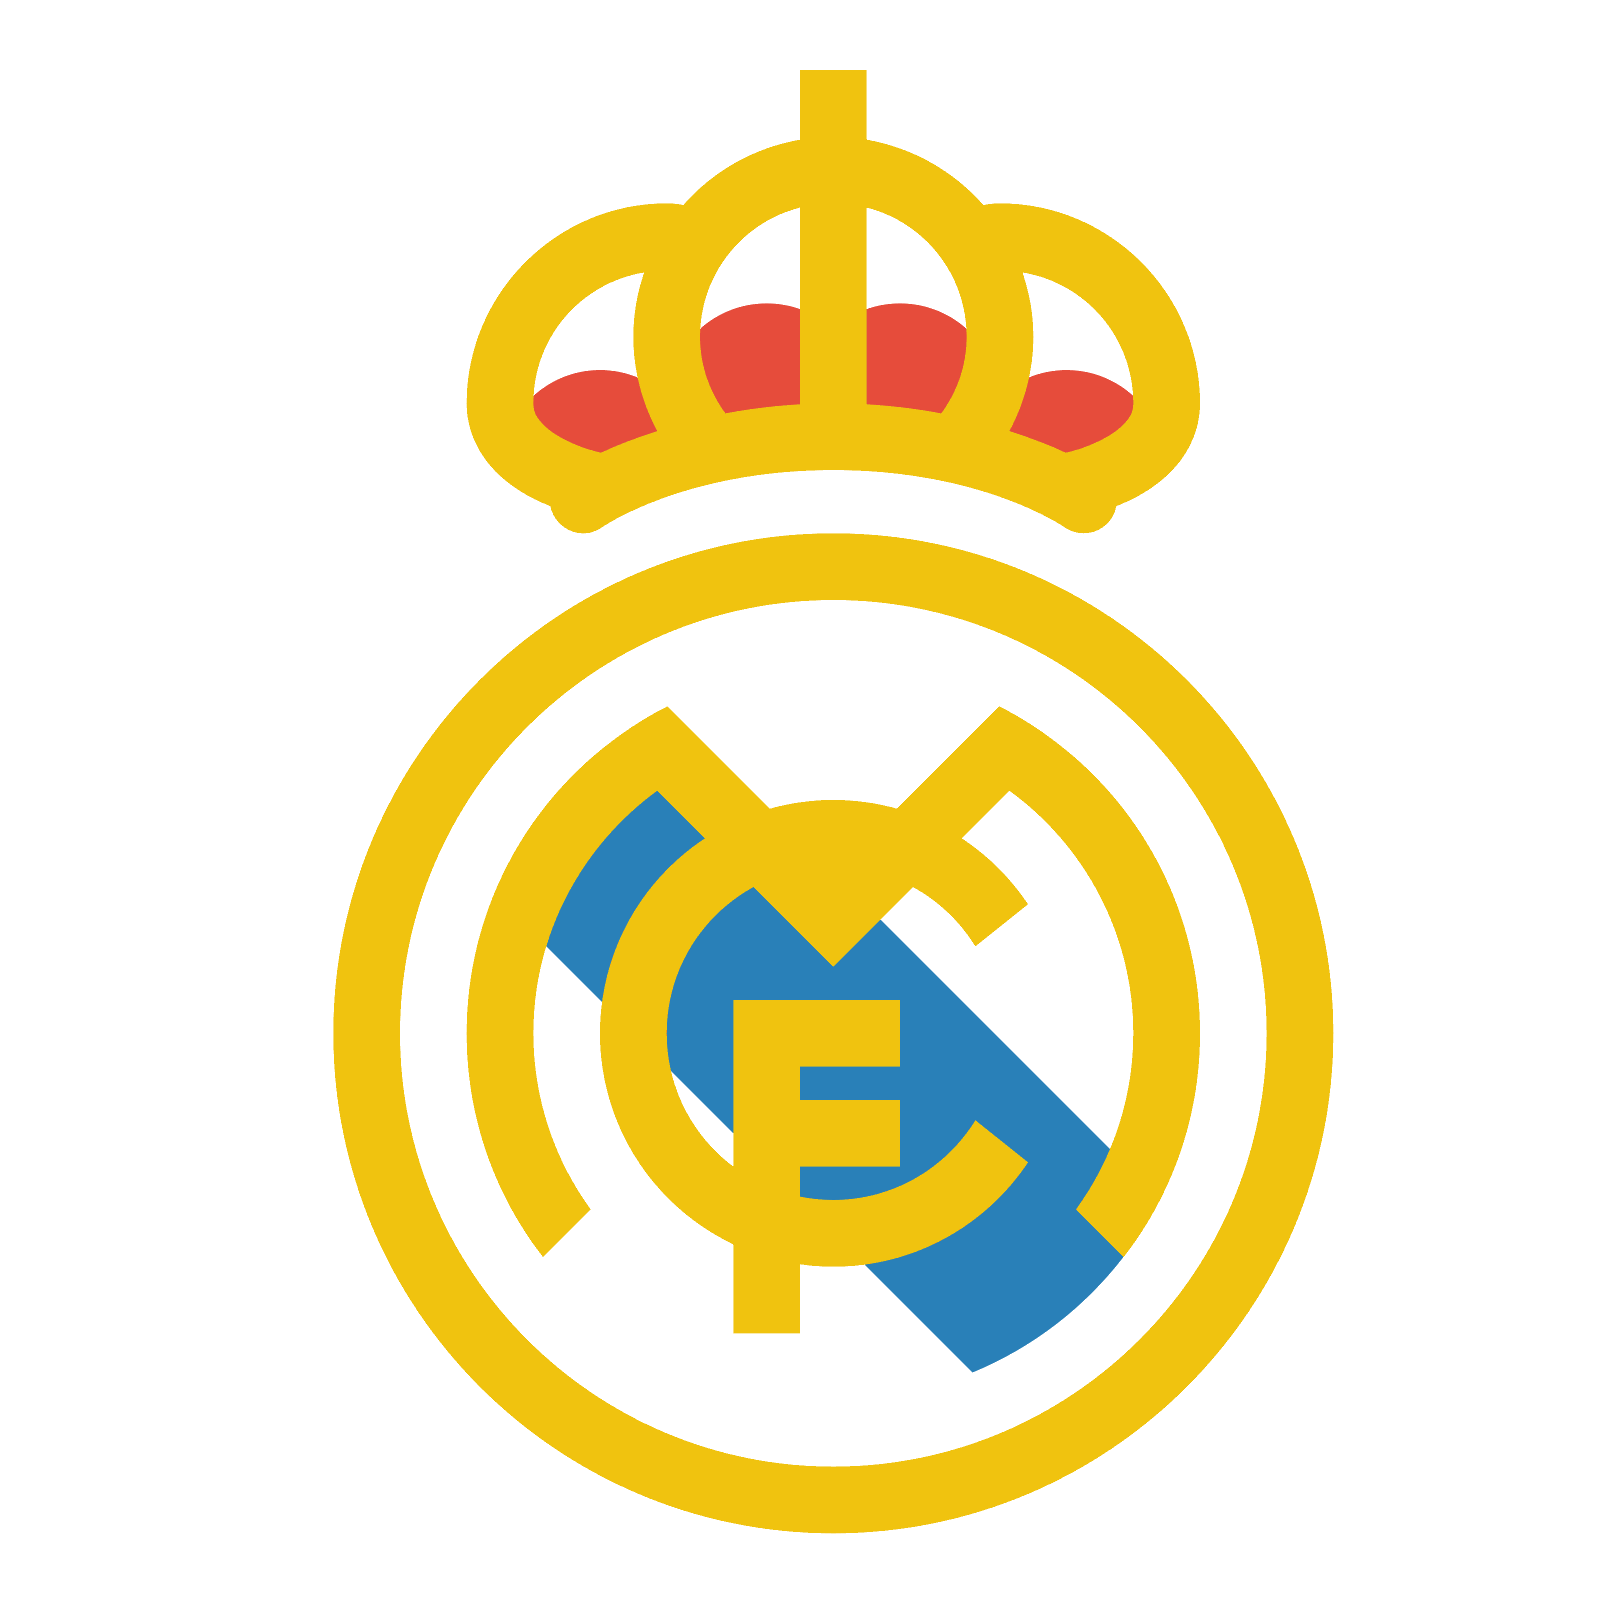 Logo del real madrid clipart jpg freeuse Real Madrid Png (+) - Free Download | fourjay.org jpg freeuse